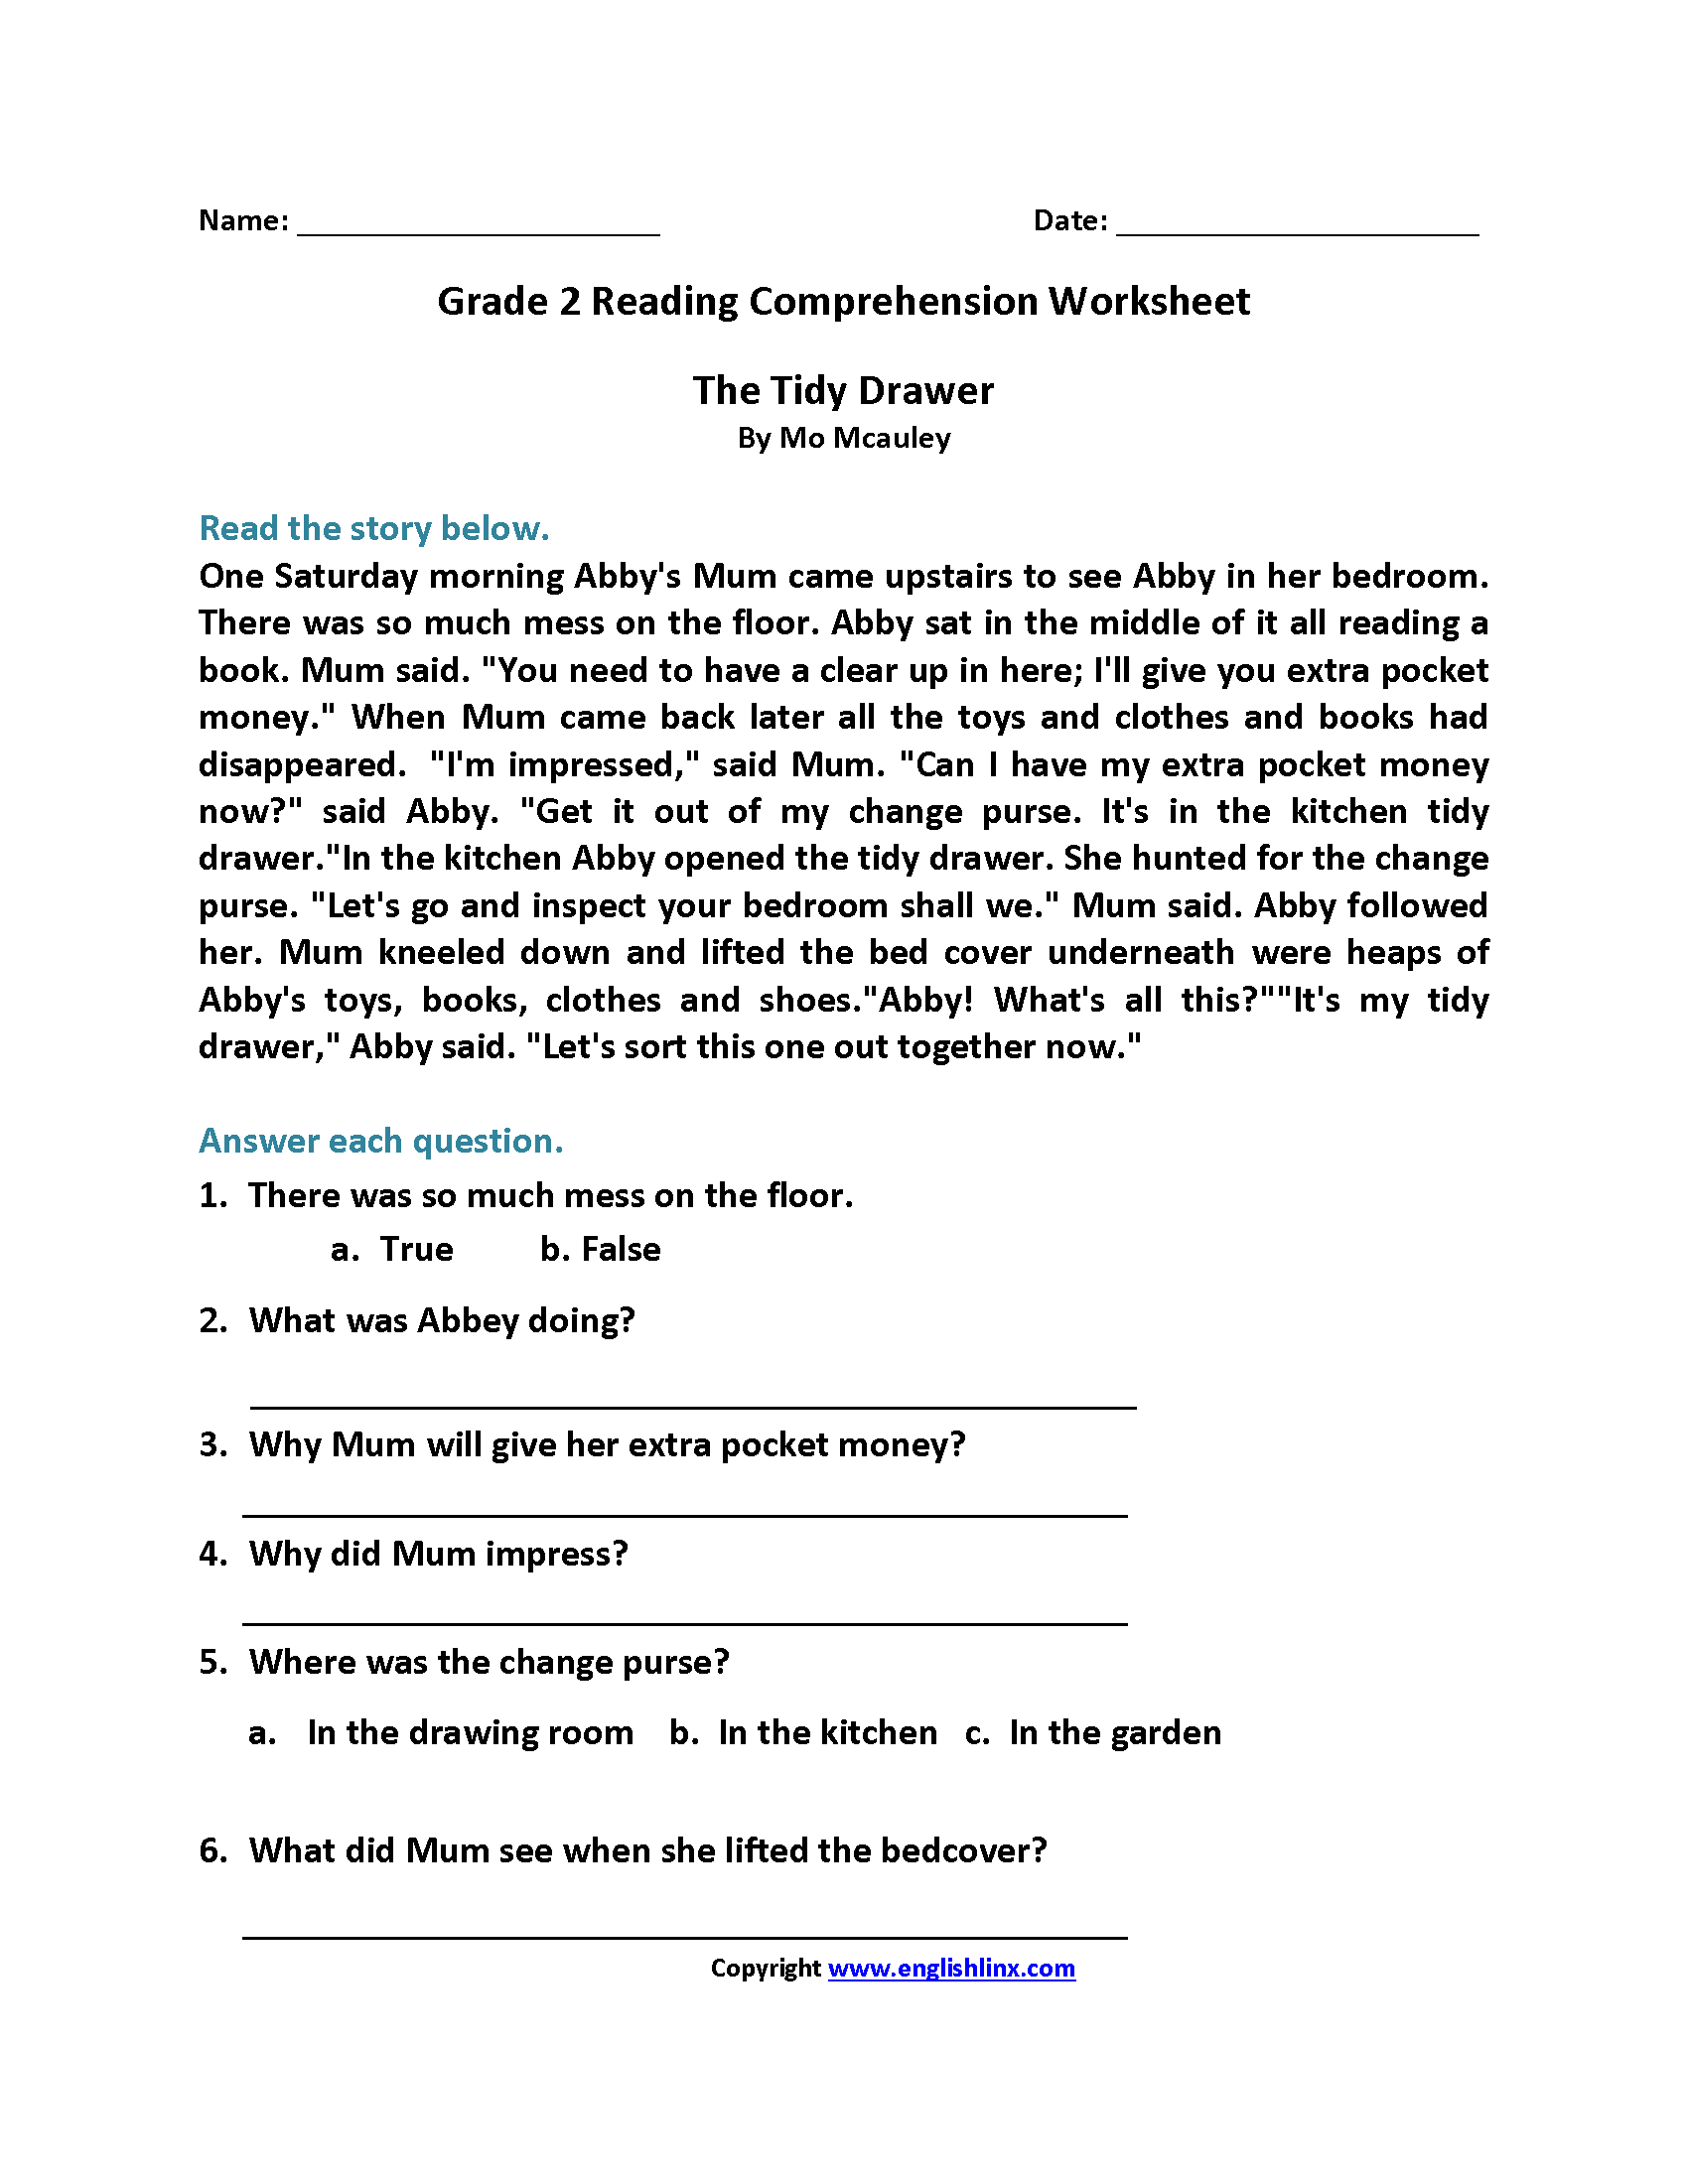 hight resolution of 9 Best Grade 2 Worksheets With Questions For Comprehension images on Best  Worksheets Collection